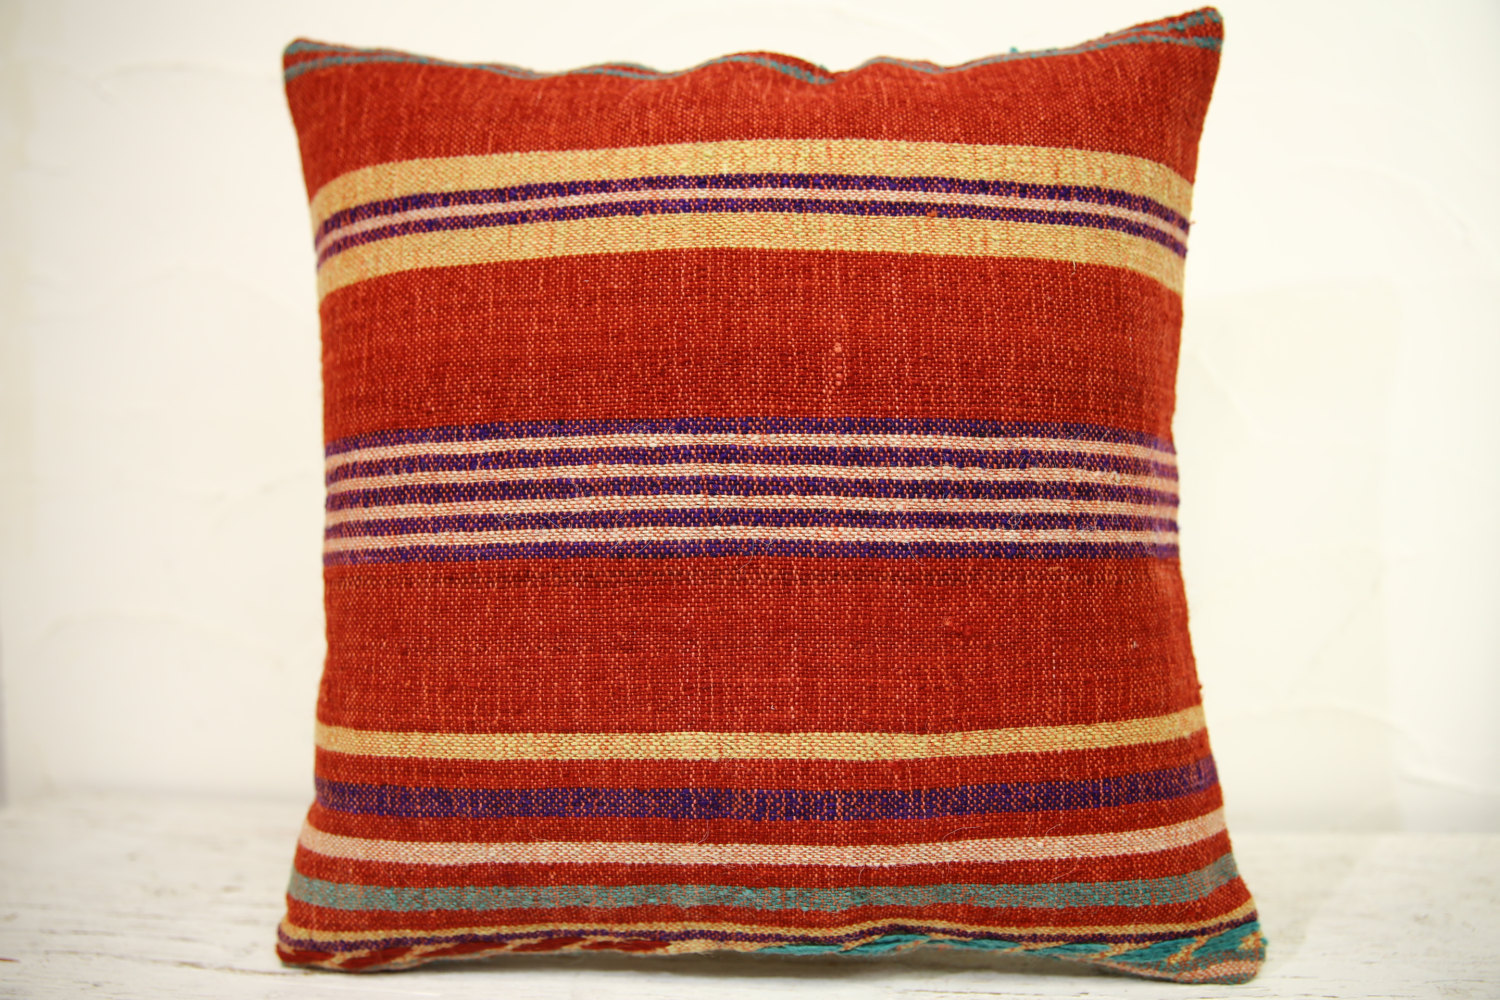 Kilim Pillows | 16x16 | Turkish pillows | 1265 | Accent Pillow,Decorative Pillow